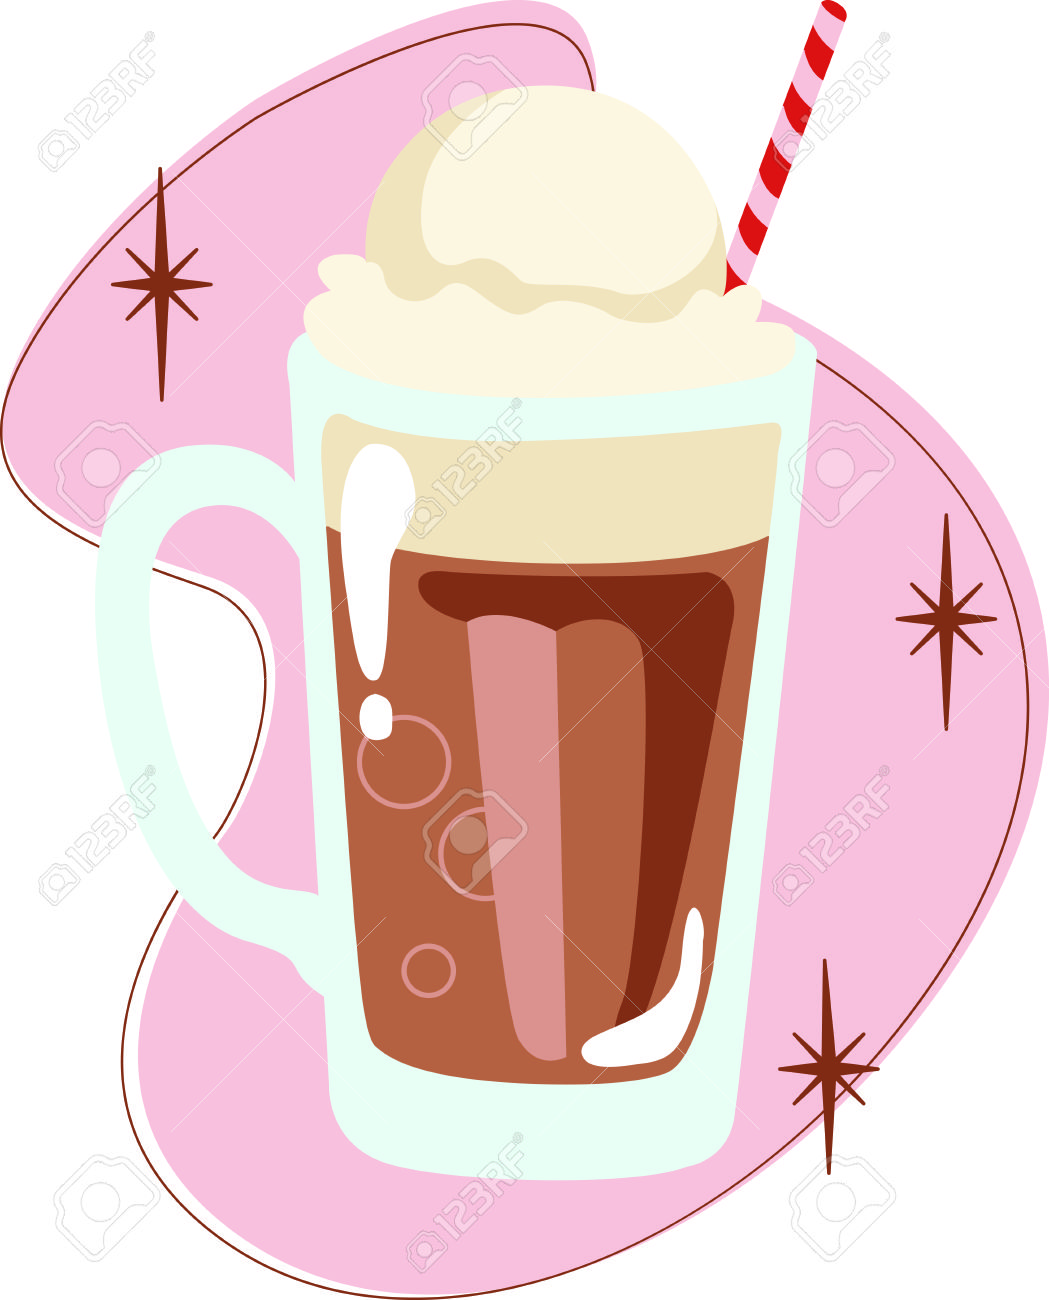 Rootbeer float clipart 6 » Clipart Station.